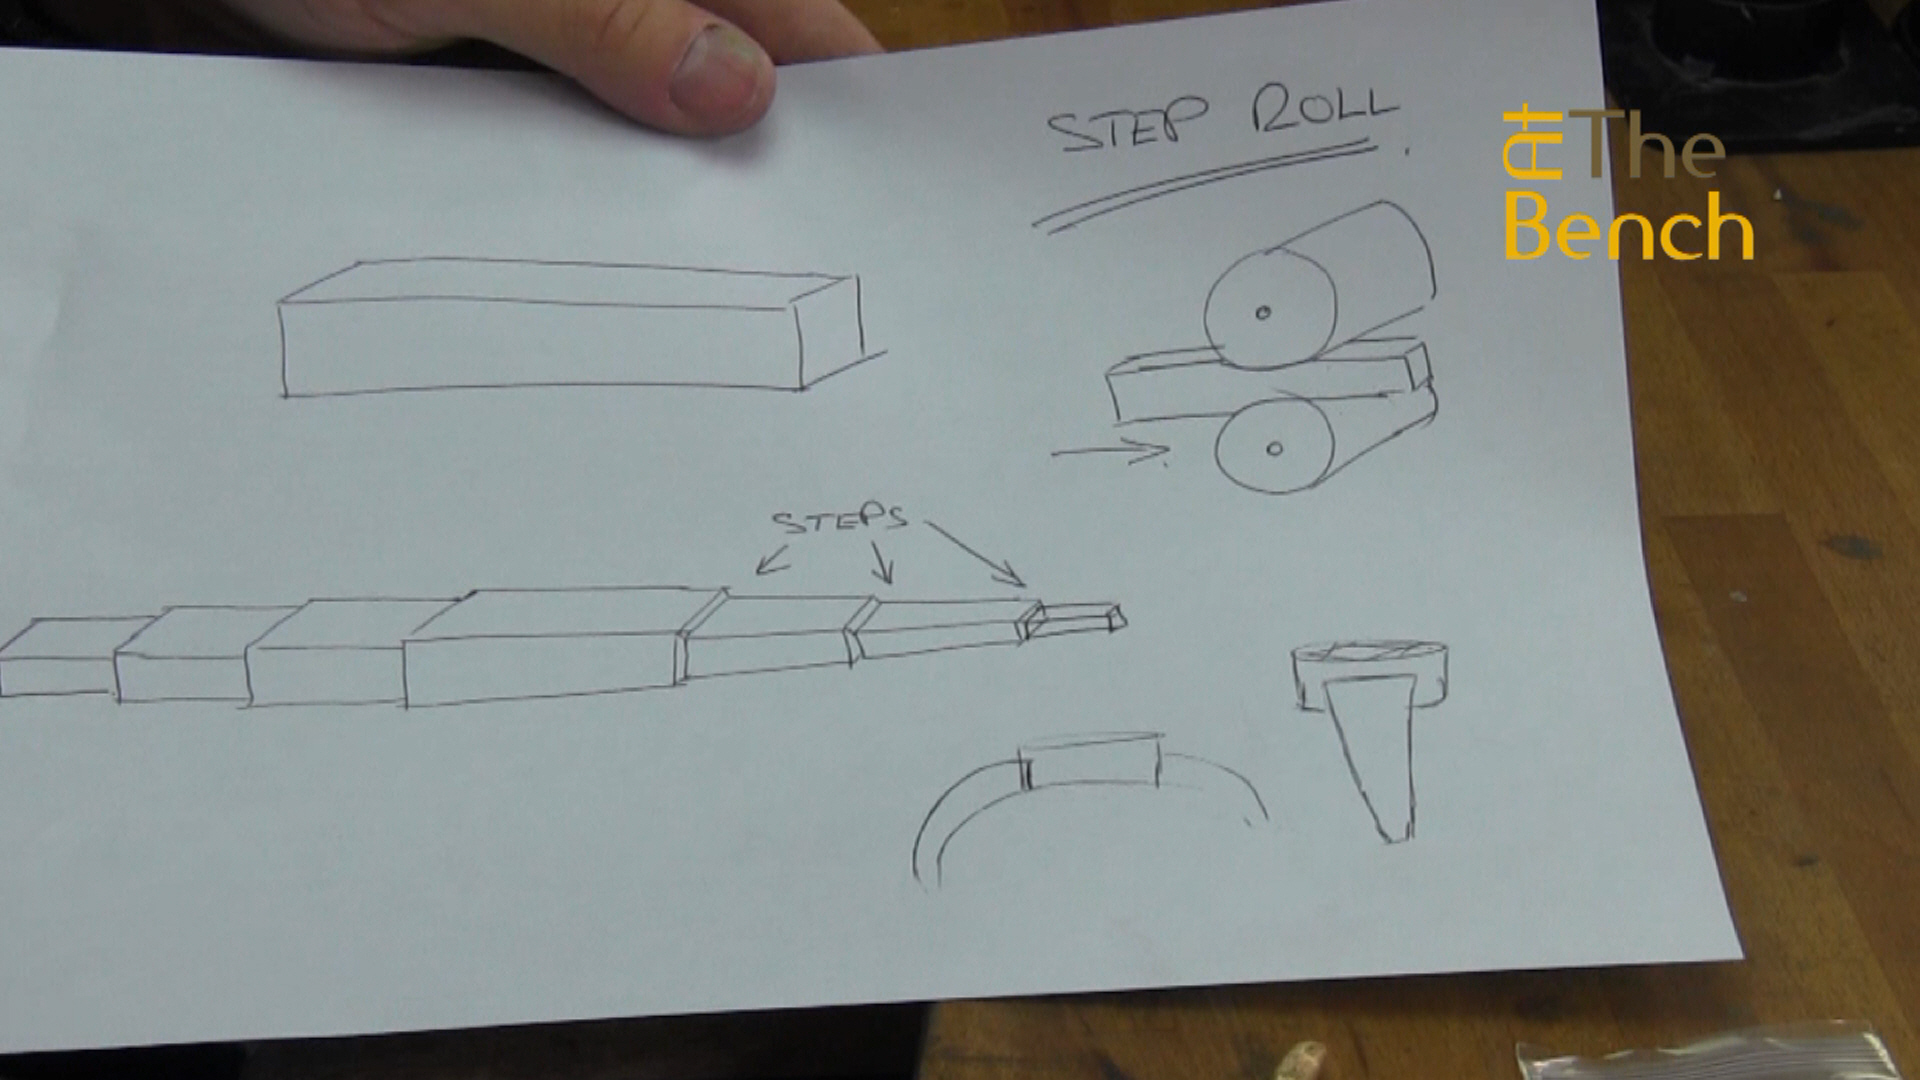 Step Rolling a Shank